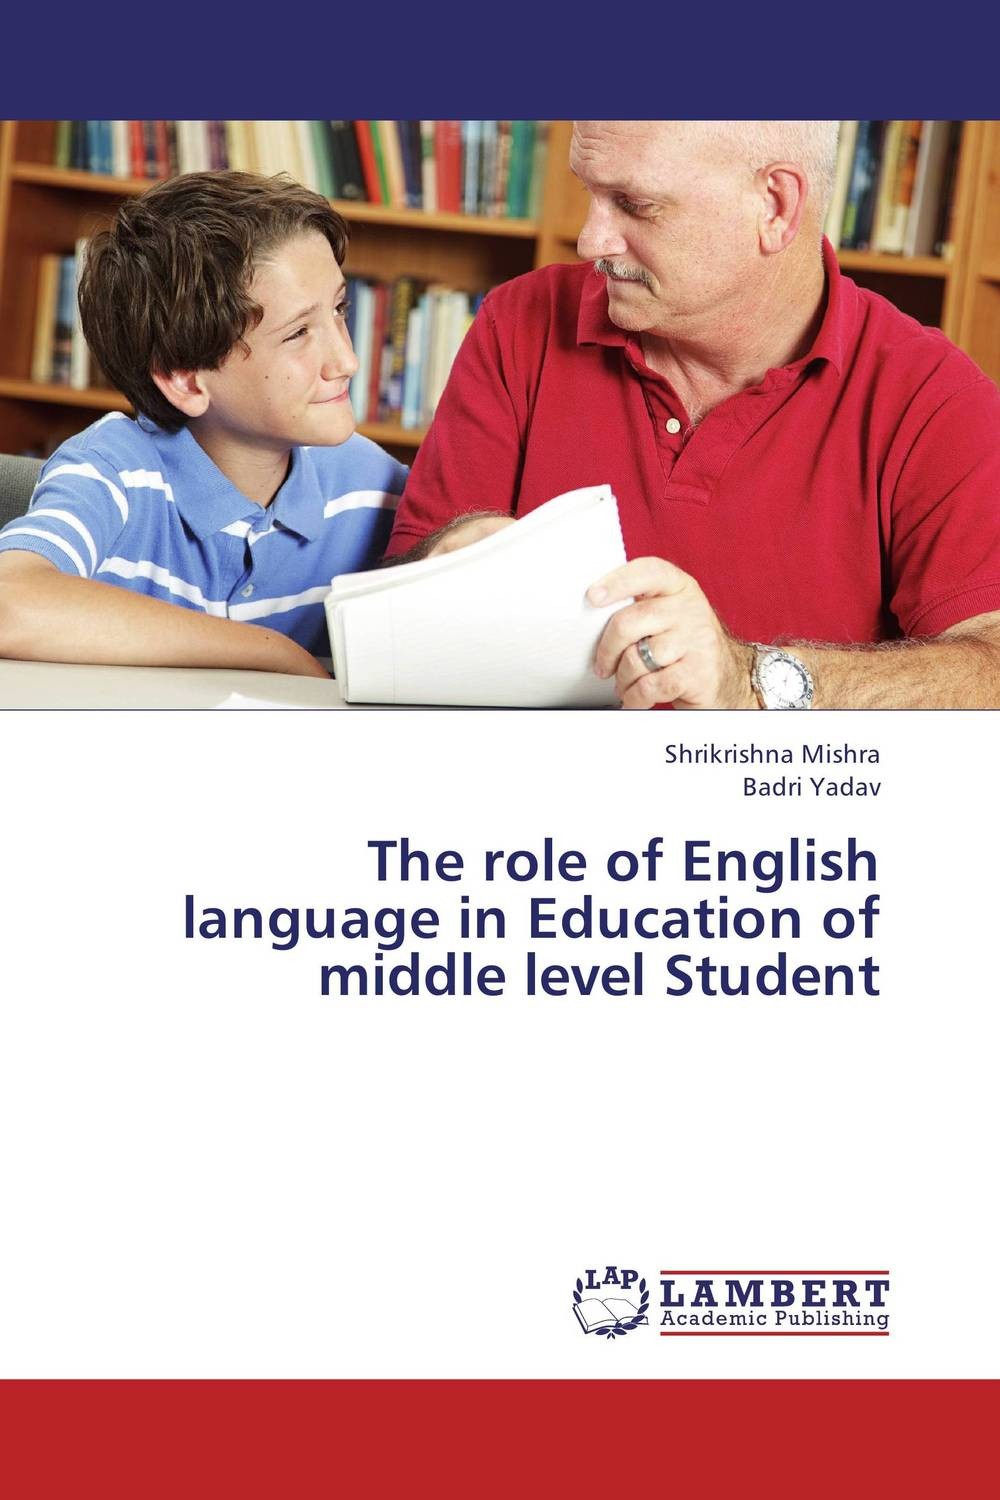 The role of English language in Education of middle level Student language change and lexical variation in youth language